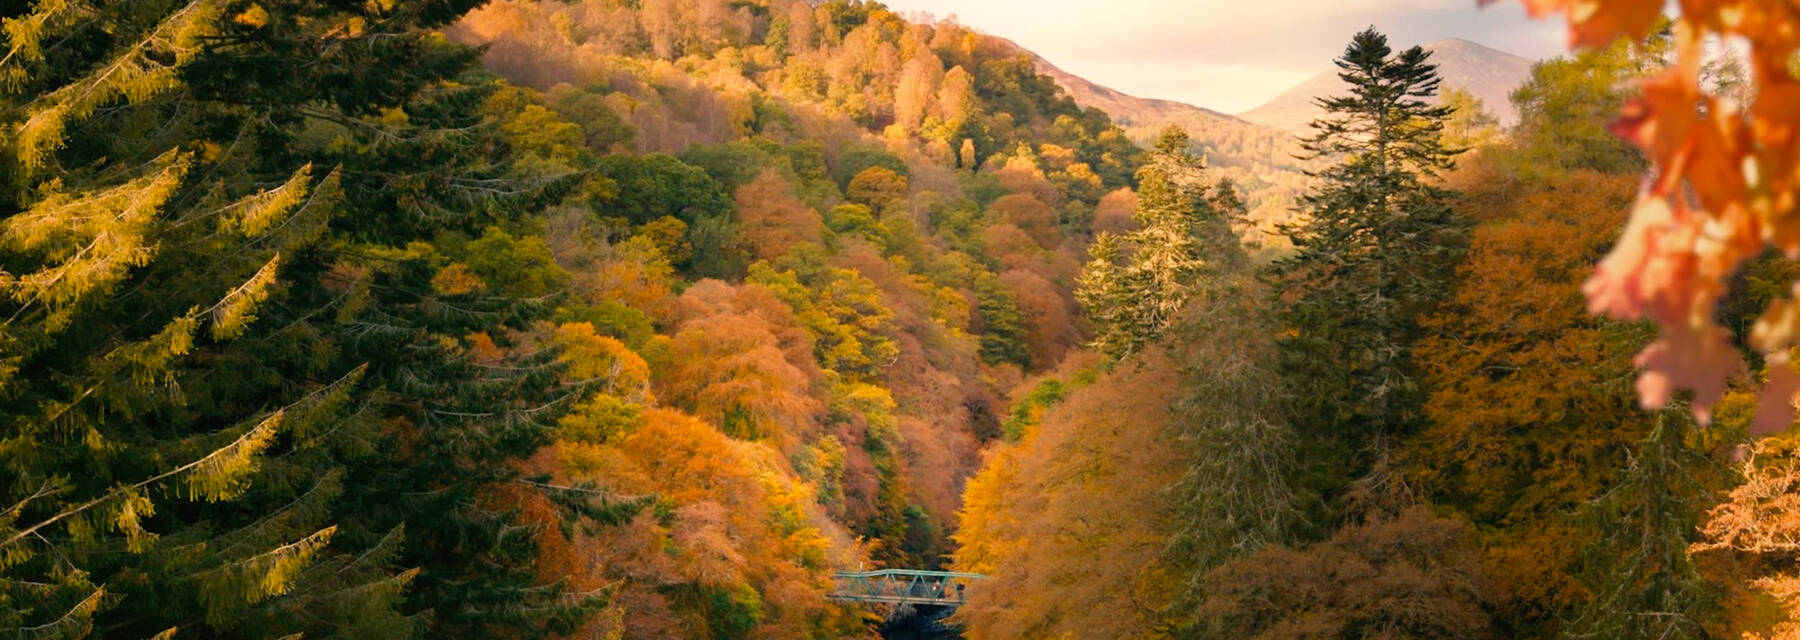 The river and autumn trees at Killiecrankie